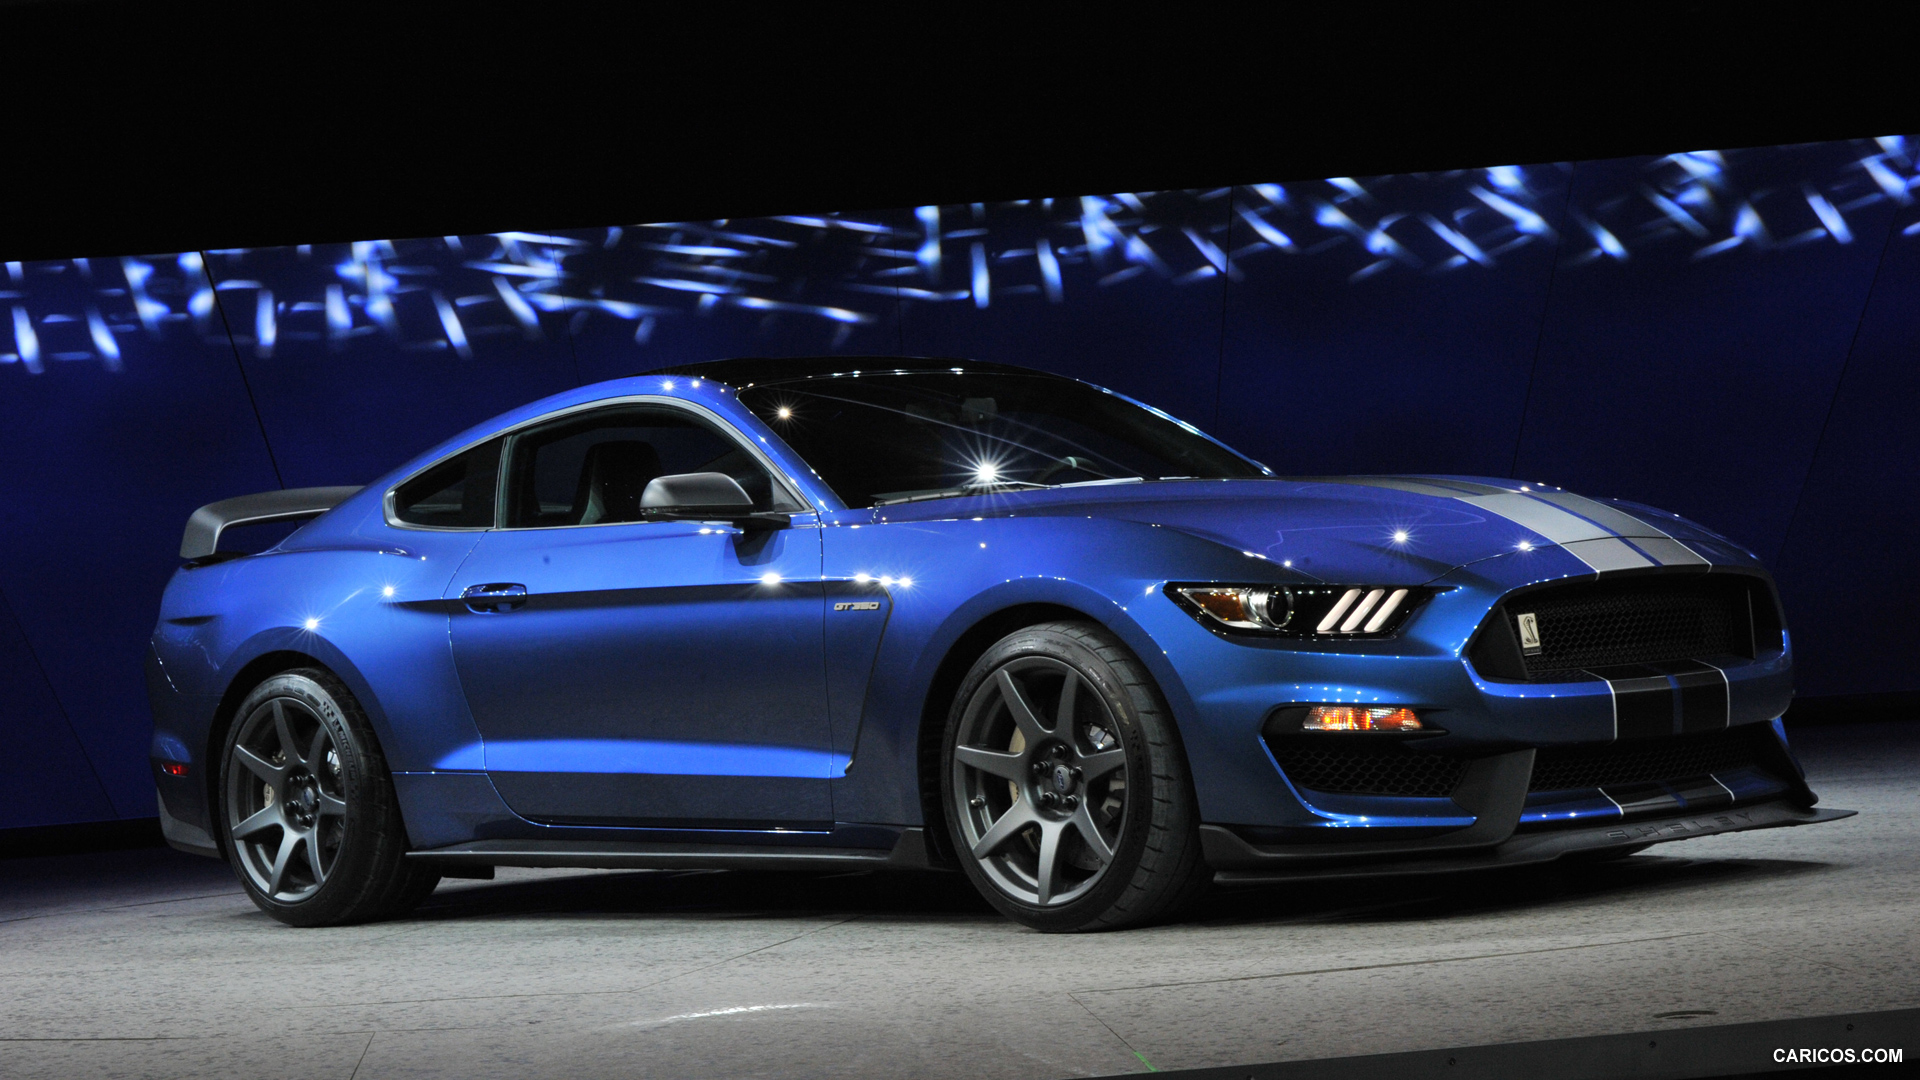 Ford Mustang Shelby GT350R Wallpaper 1920x1080